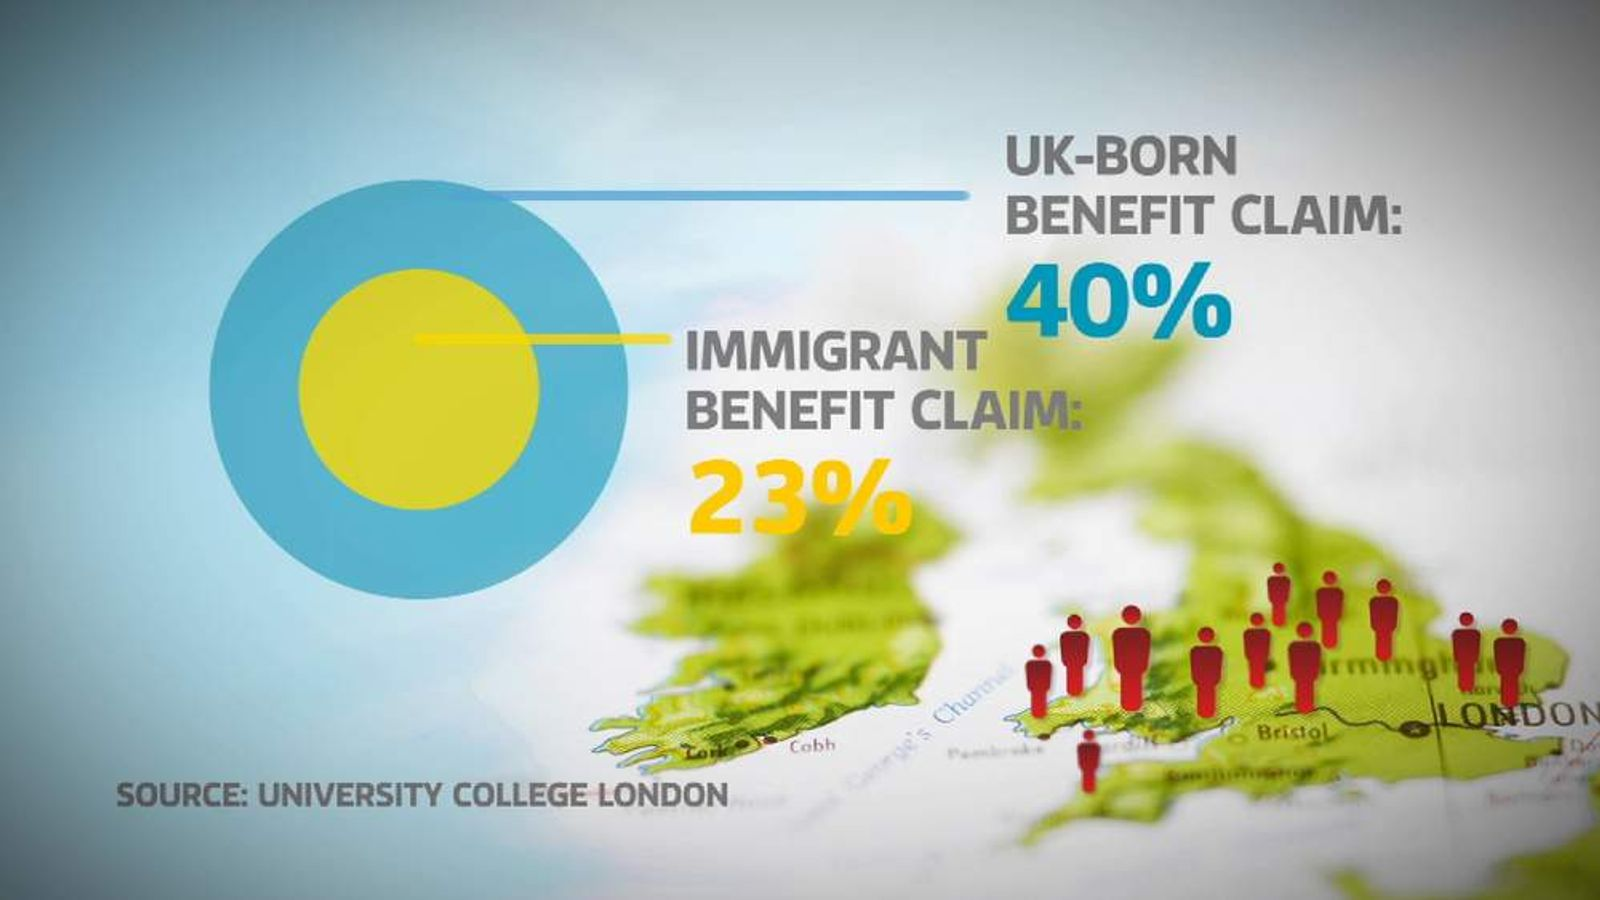 Immigration benefit claims